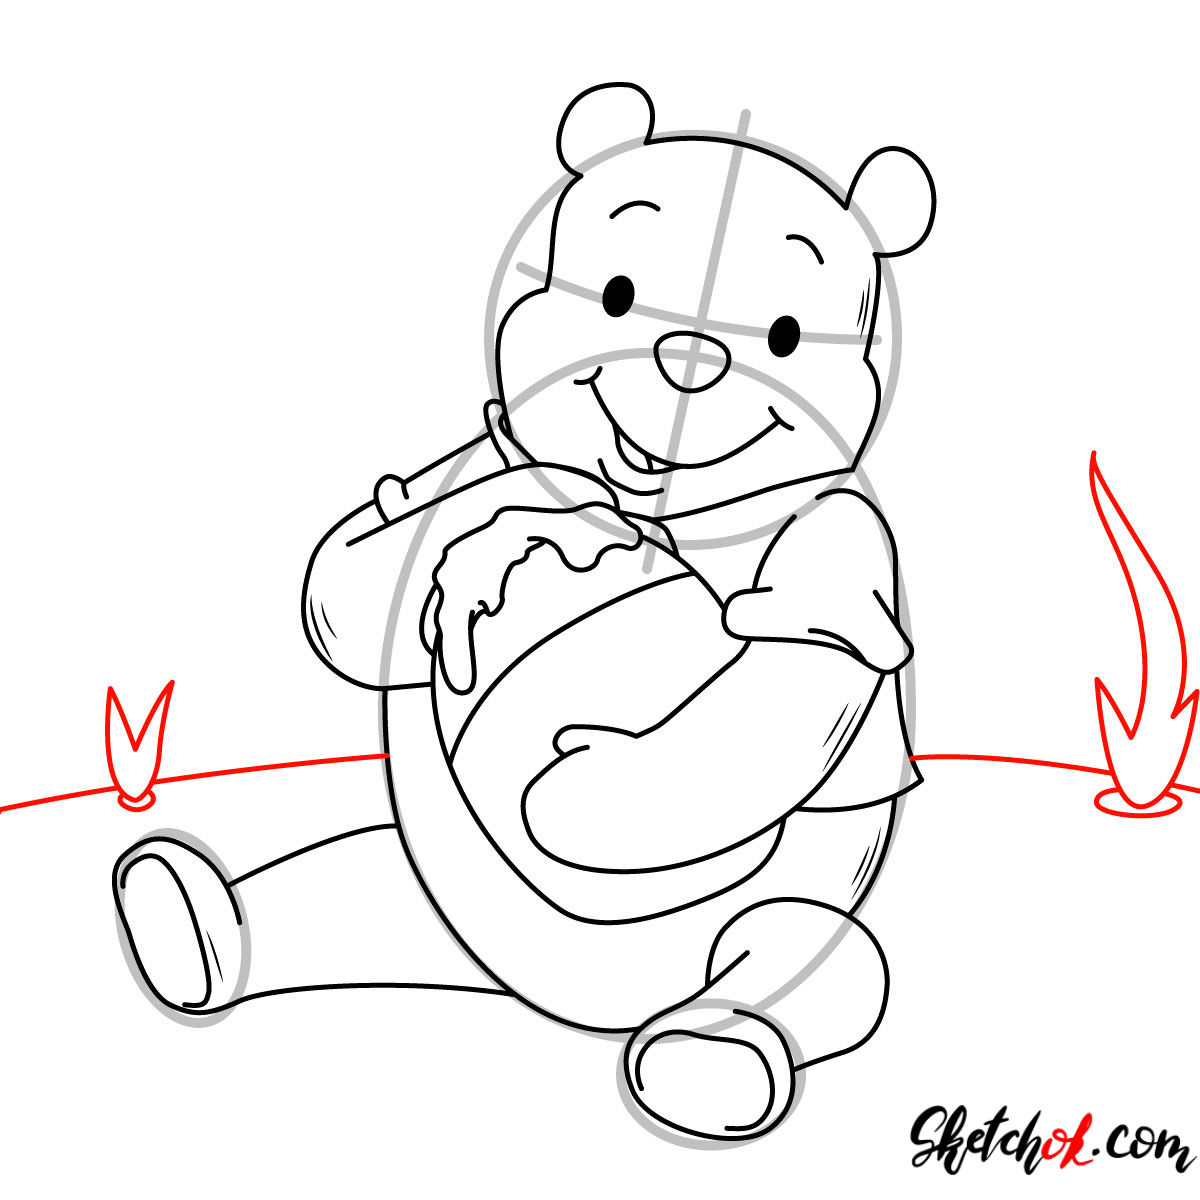 How to draw Winnie-the-Pooh eating honey - step 10